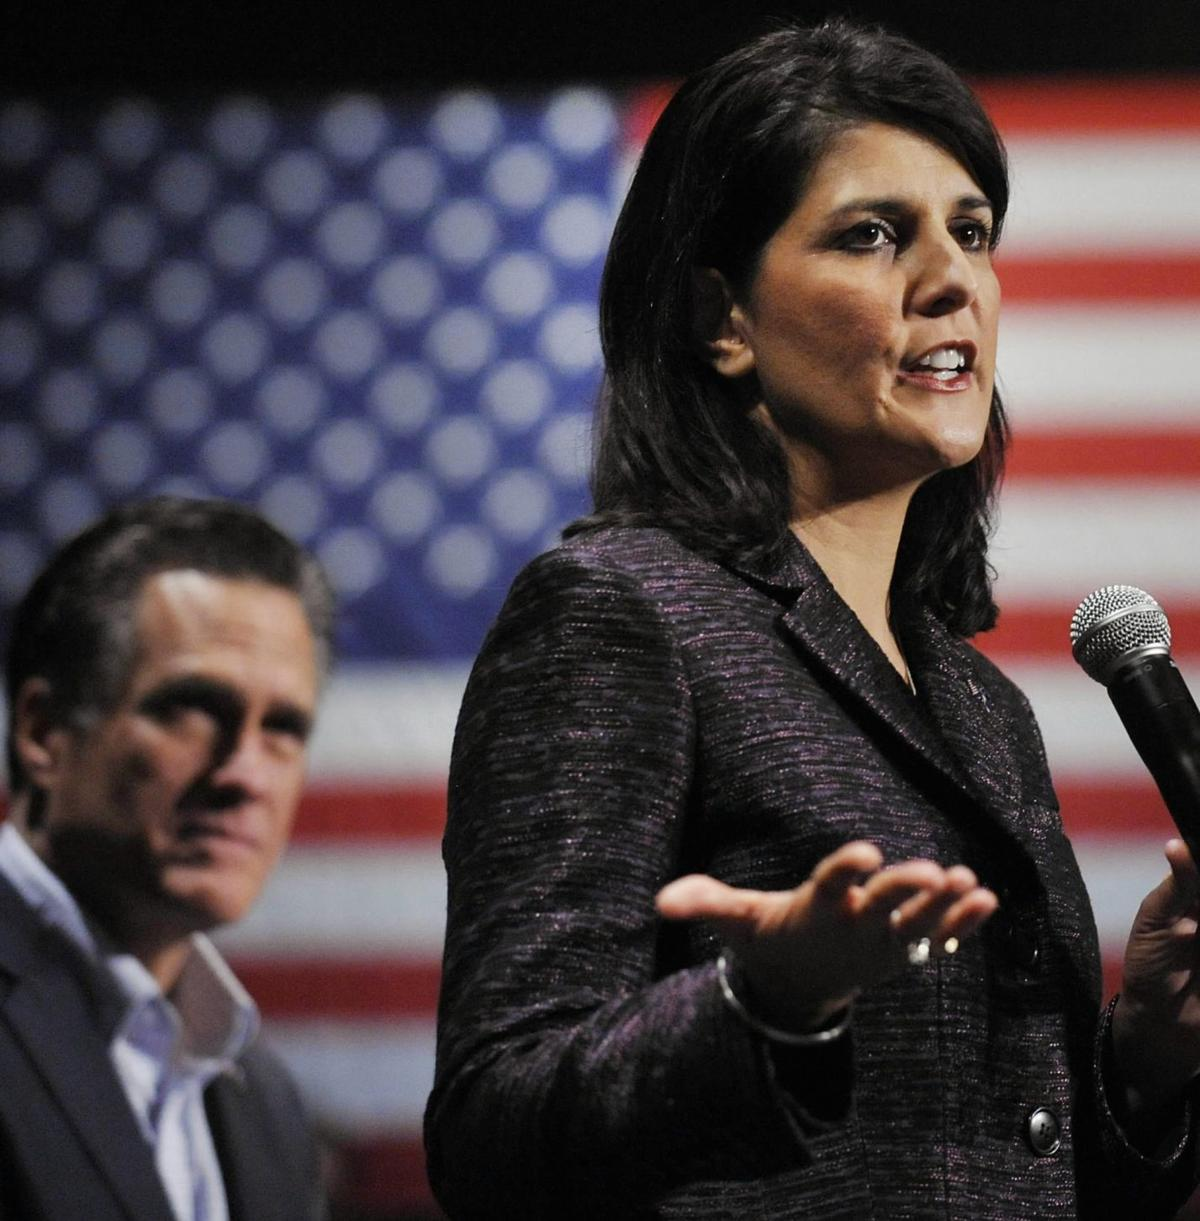 Haley ethics inquiry back on